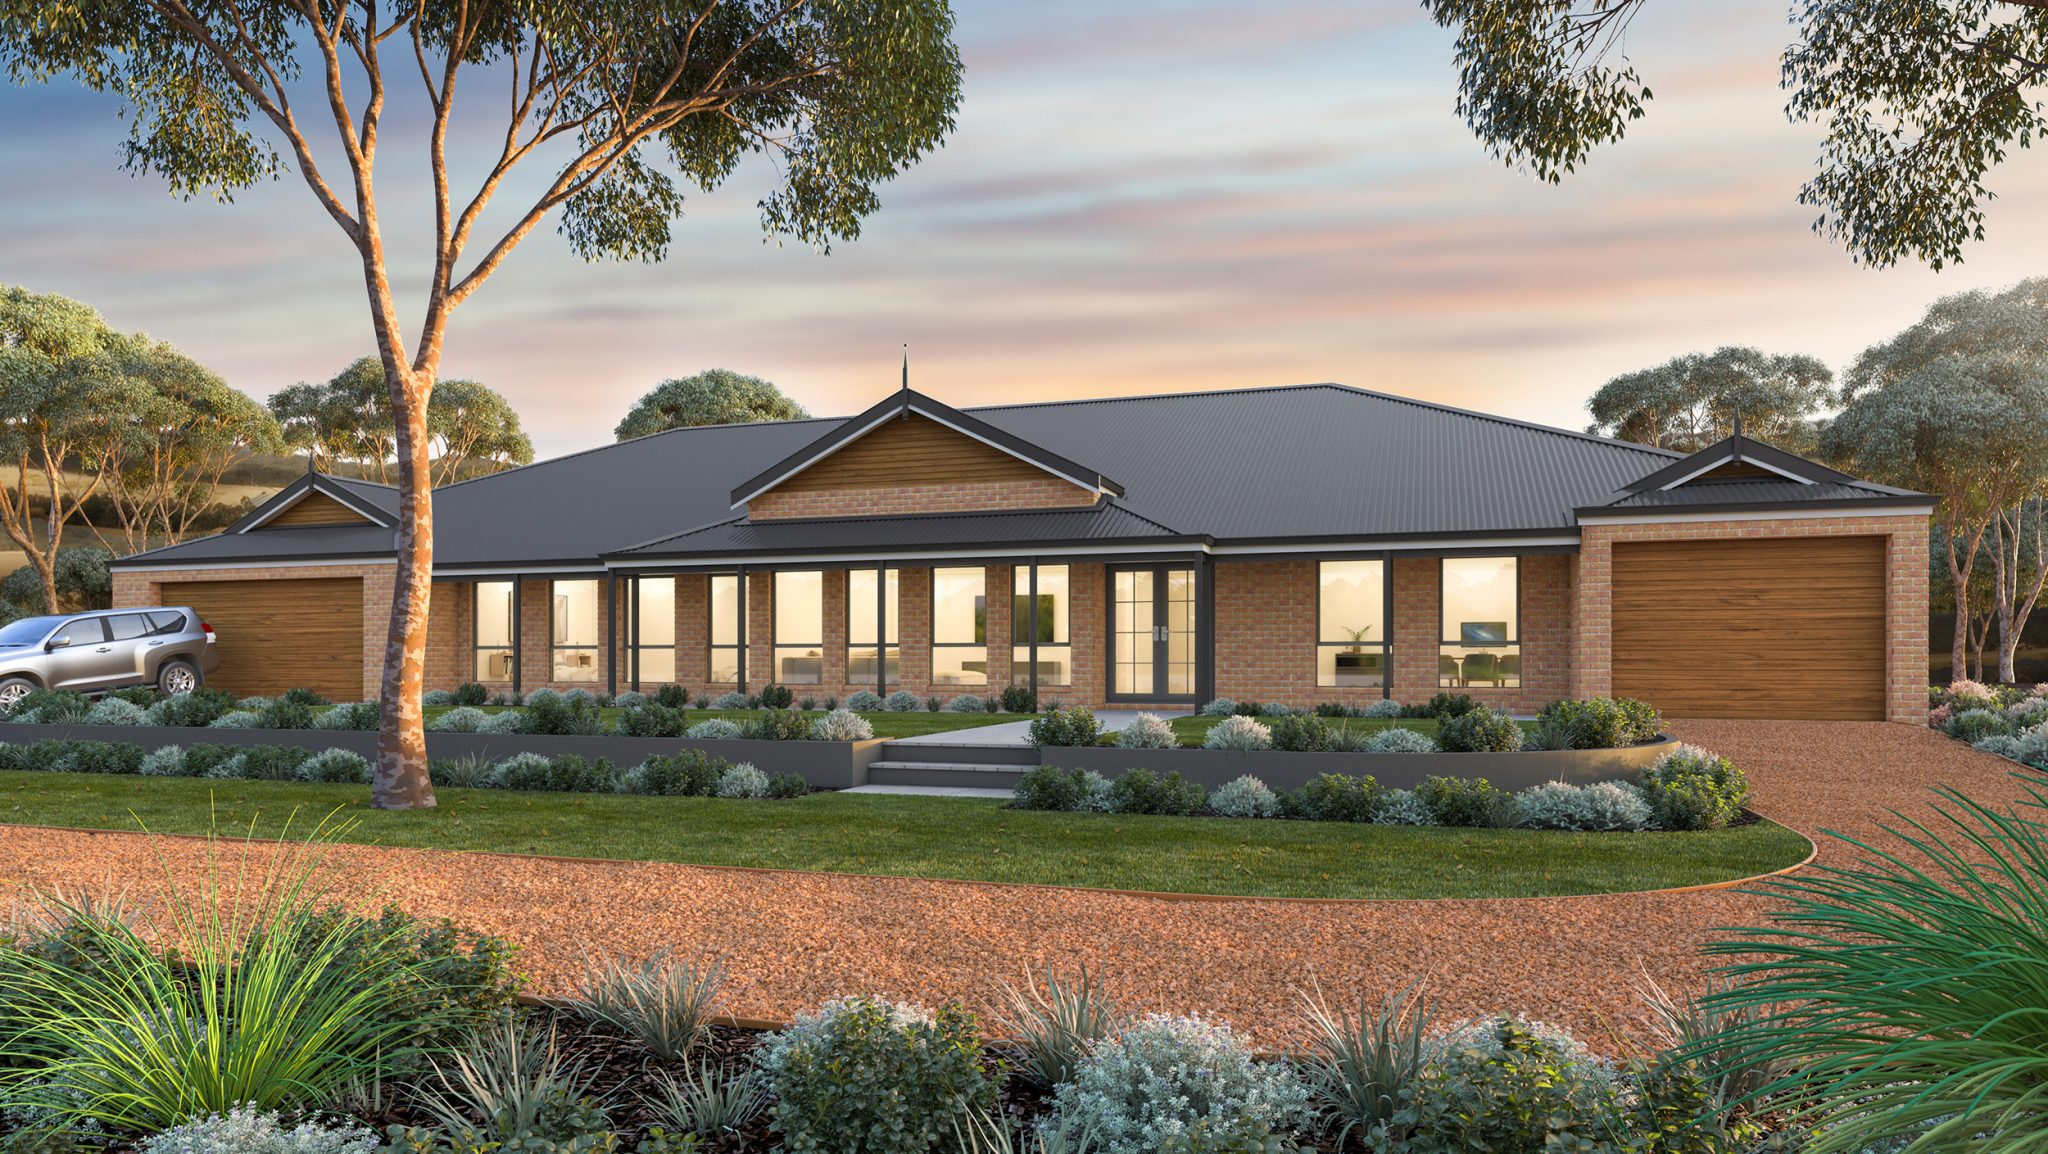 The oakford dual living farmhouse direct homes wa Dual living house plans sale